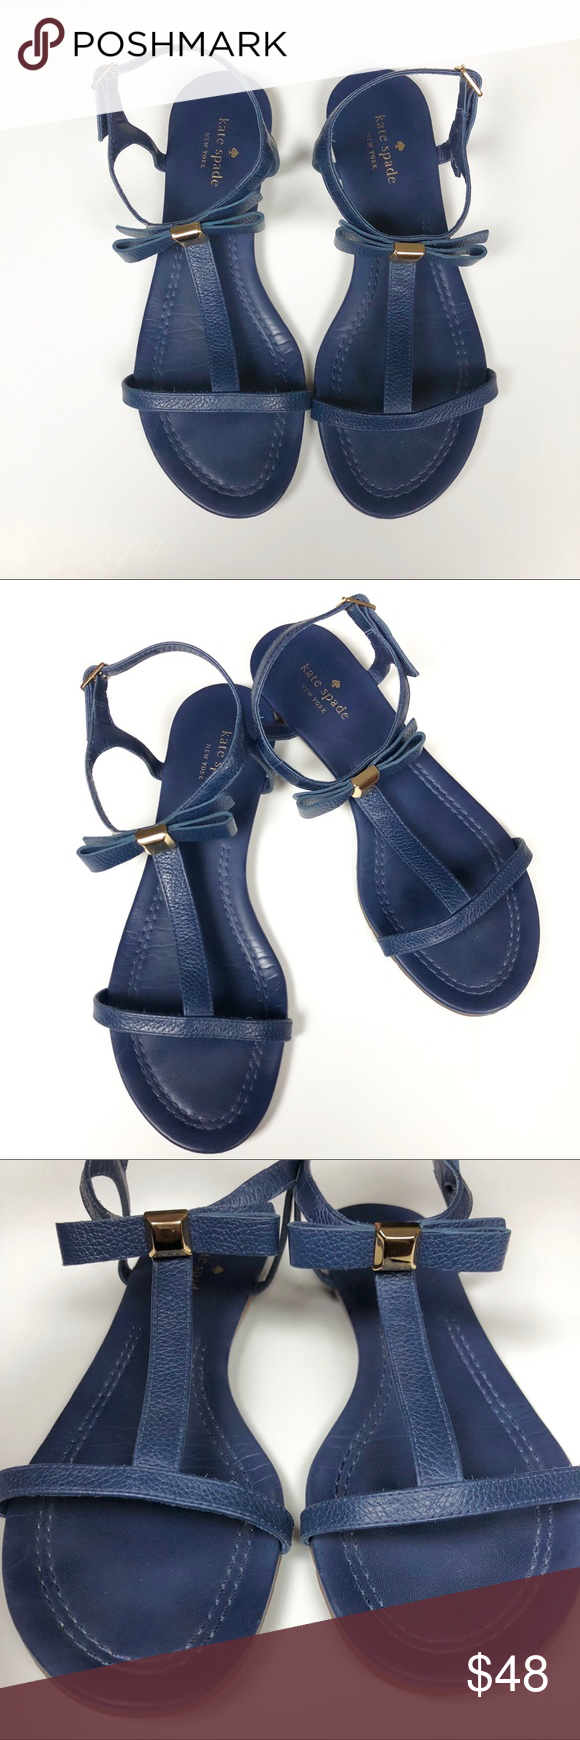 e7ba9c3f4a65 Kate Spade Tessa Navy Bow Leather Flat Sandal Gently worn Kate Spade Tessa  sandal in the color navy. In great condition aside from the small flaw in  the ...